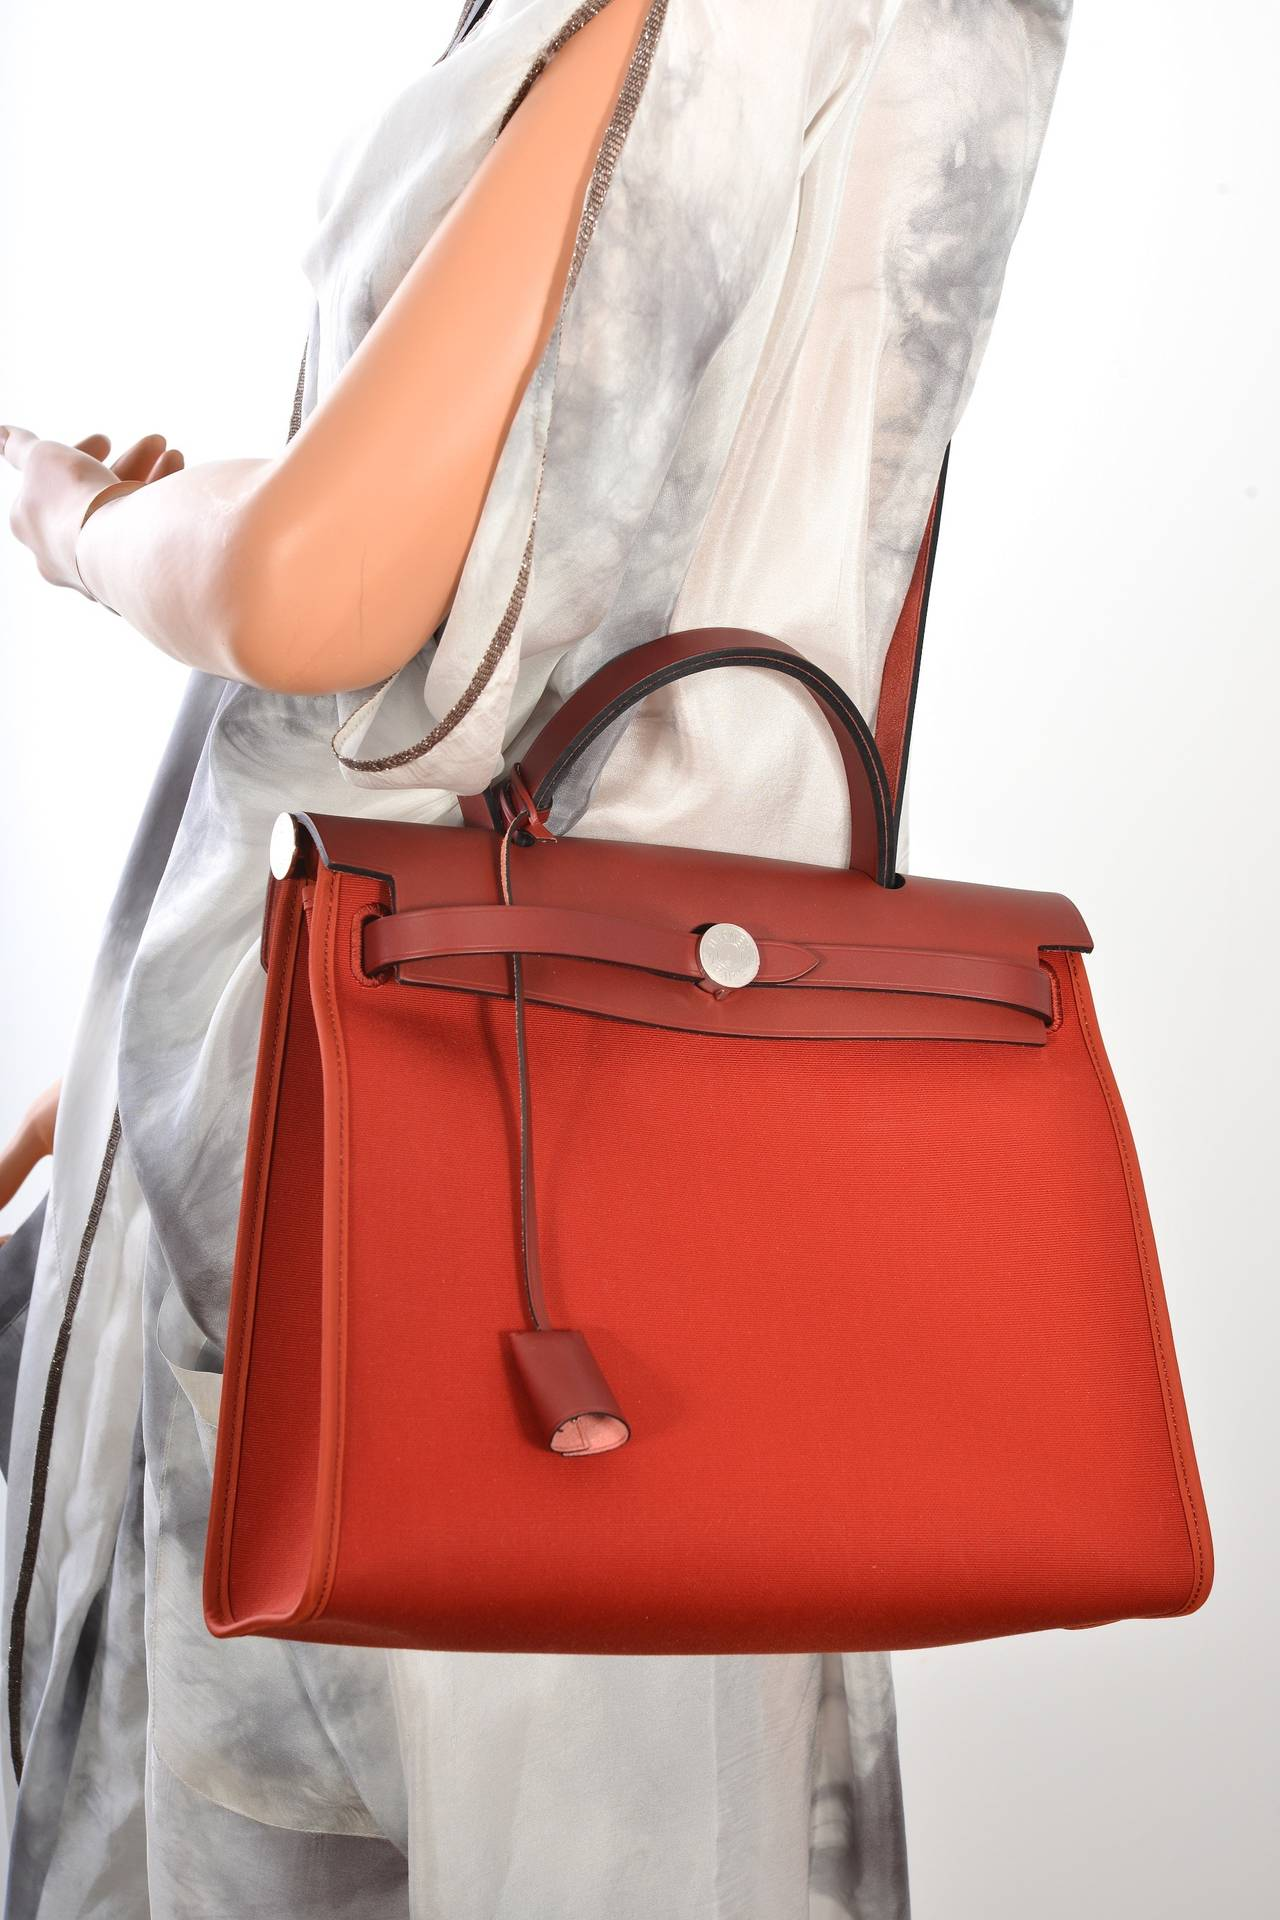 HERMES ZIP HERBAG ROUGE H CROSSBODY CANVAS and LEATHER JaneFinds ...